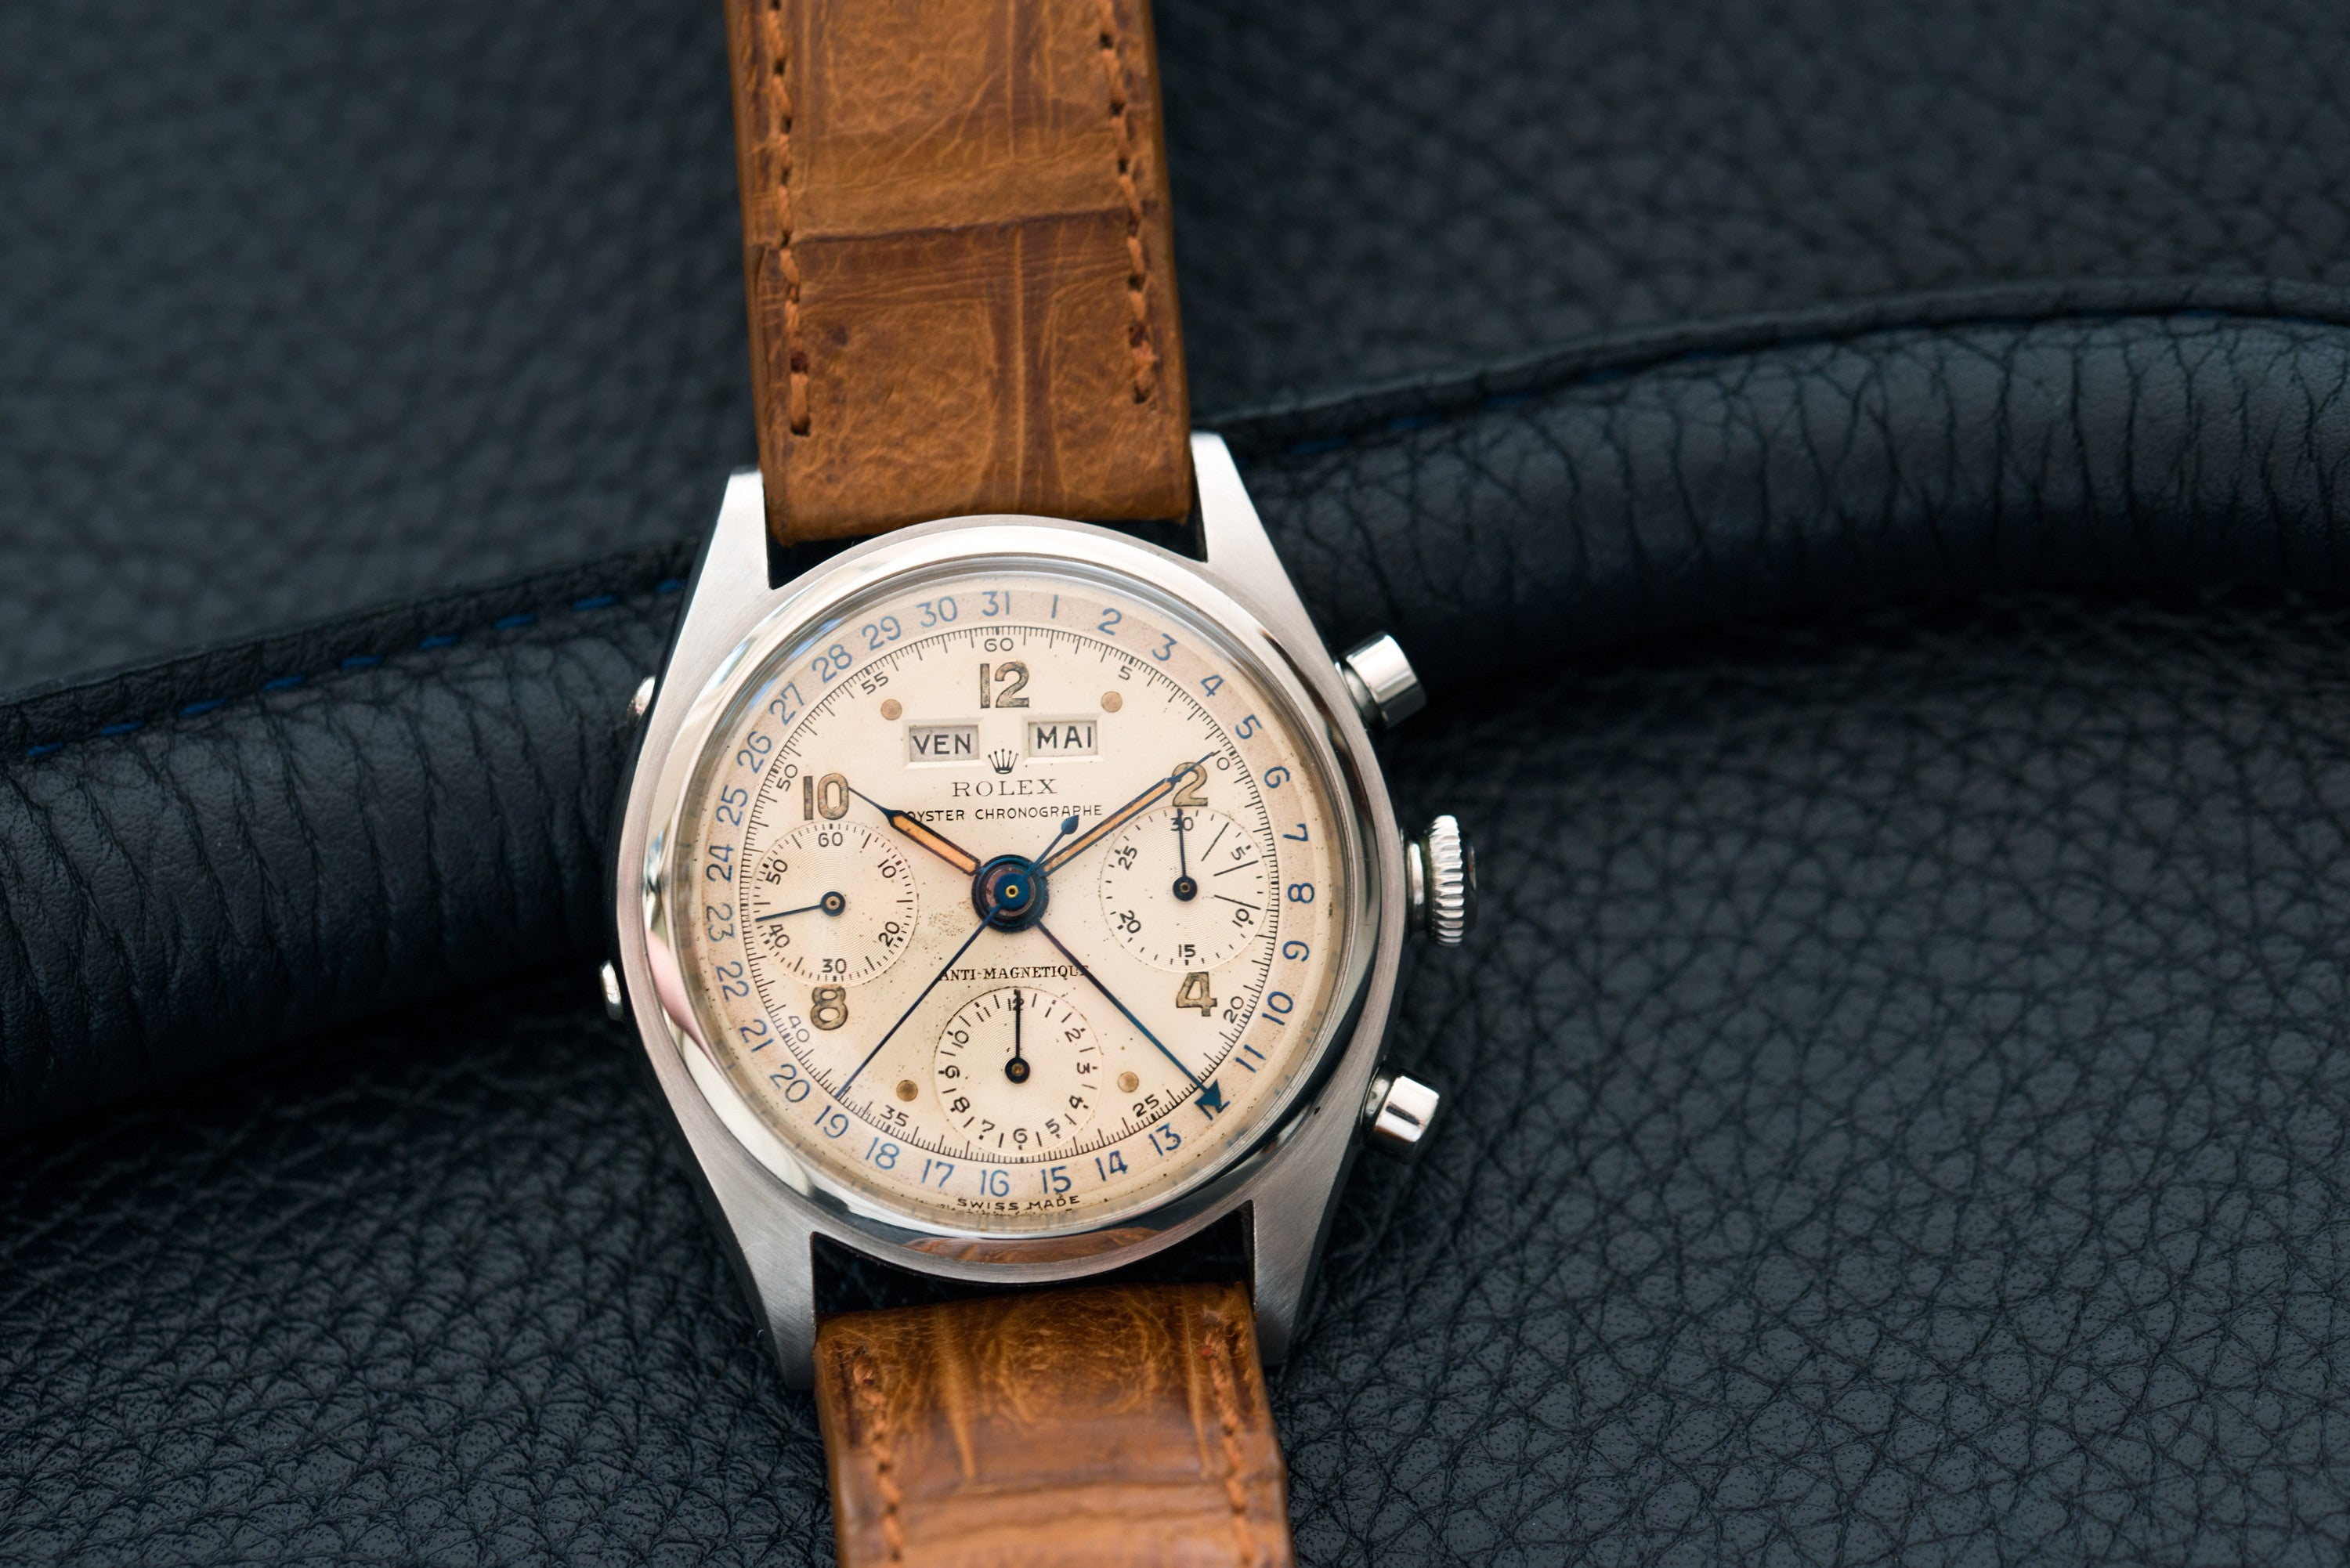 rolex jean claude killy triple calendar chronograph